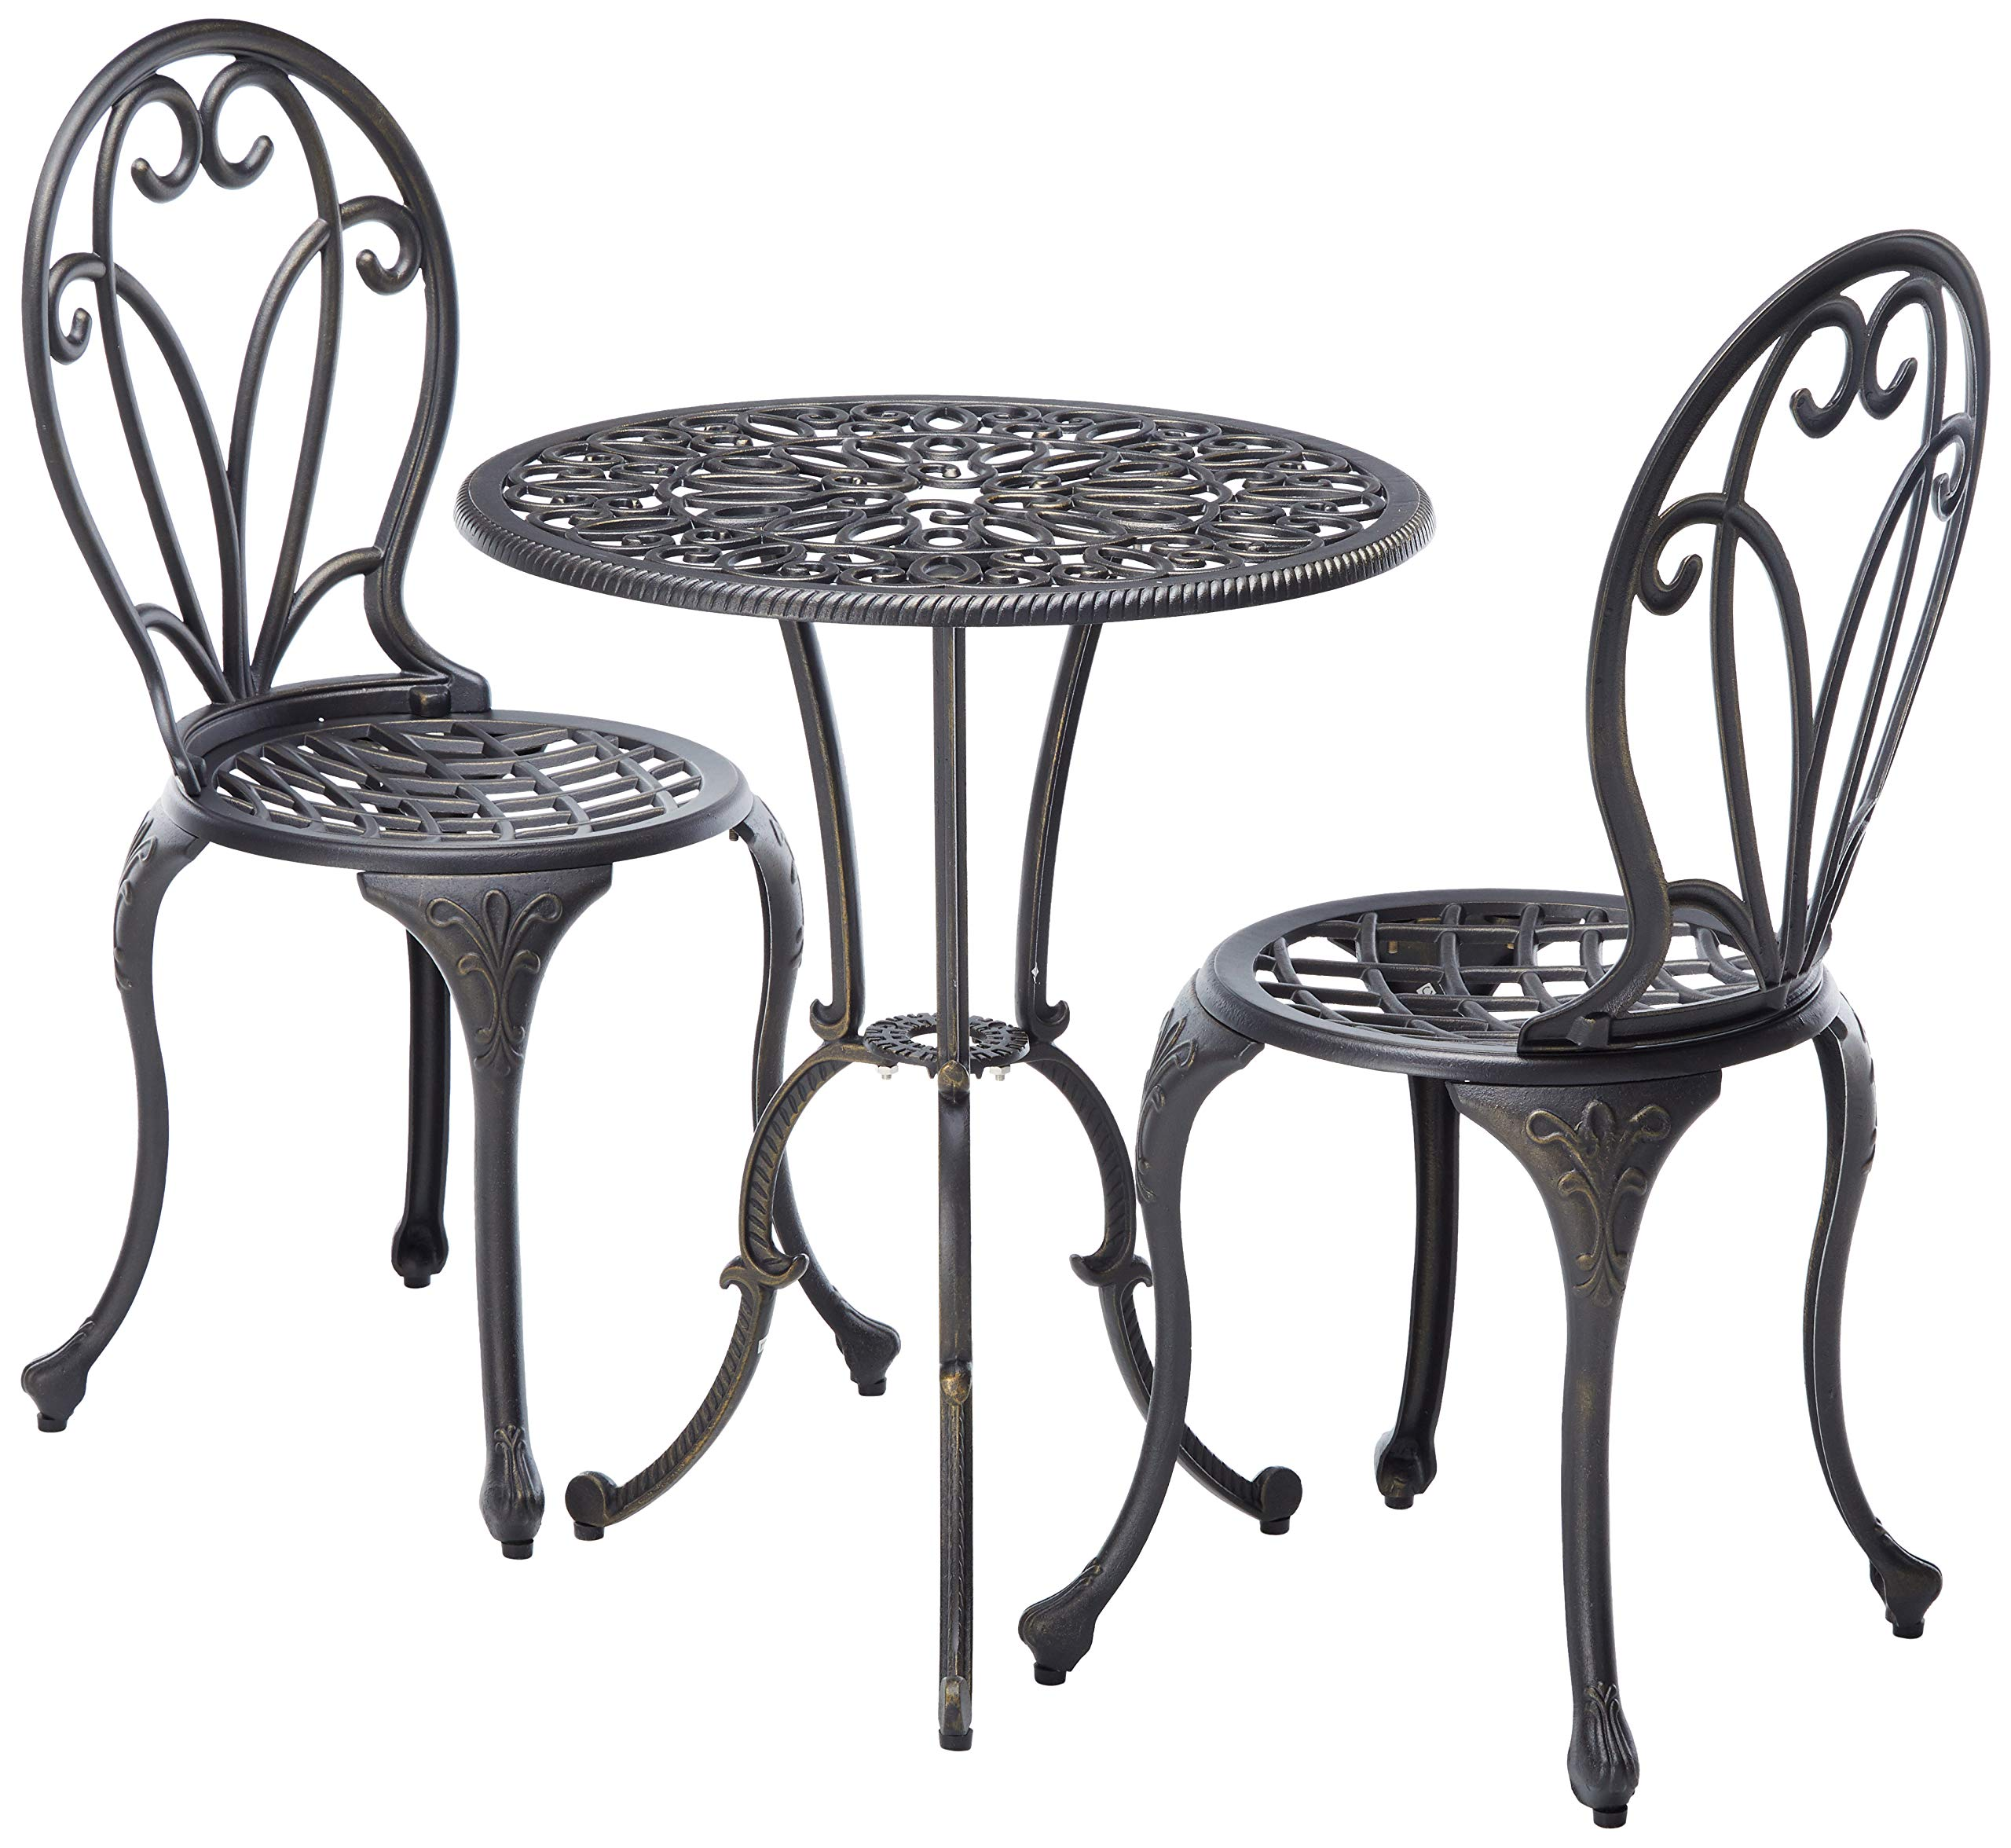 Christopher Knight Home 234795 Angeles CKH Outdoor Metal Bistro Set Copper